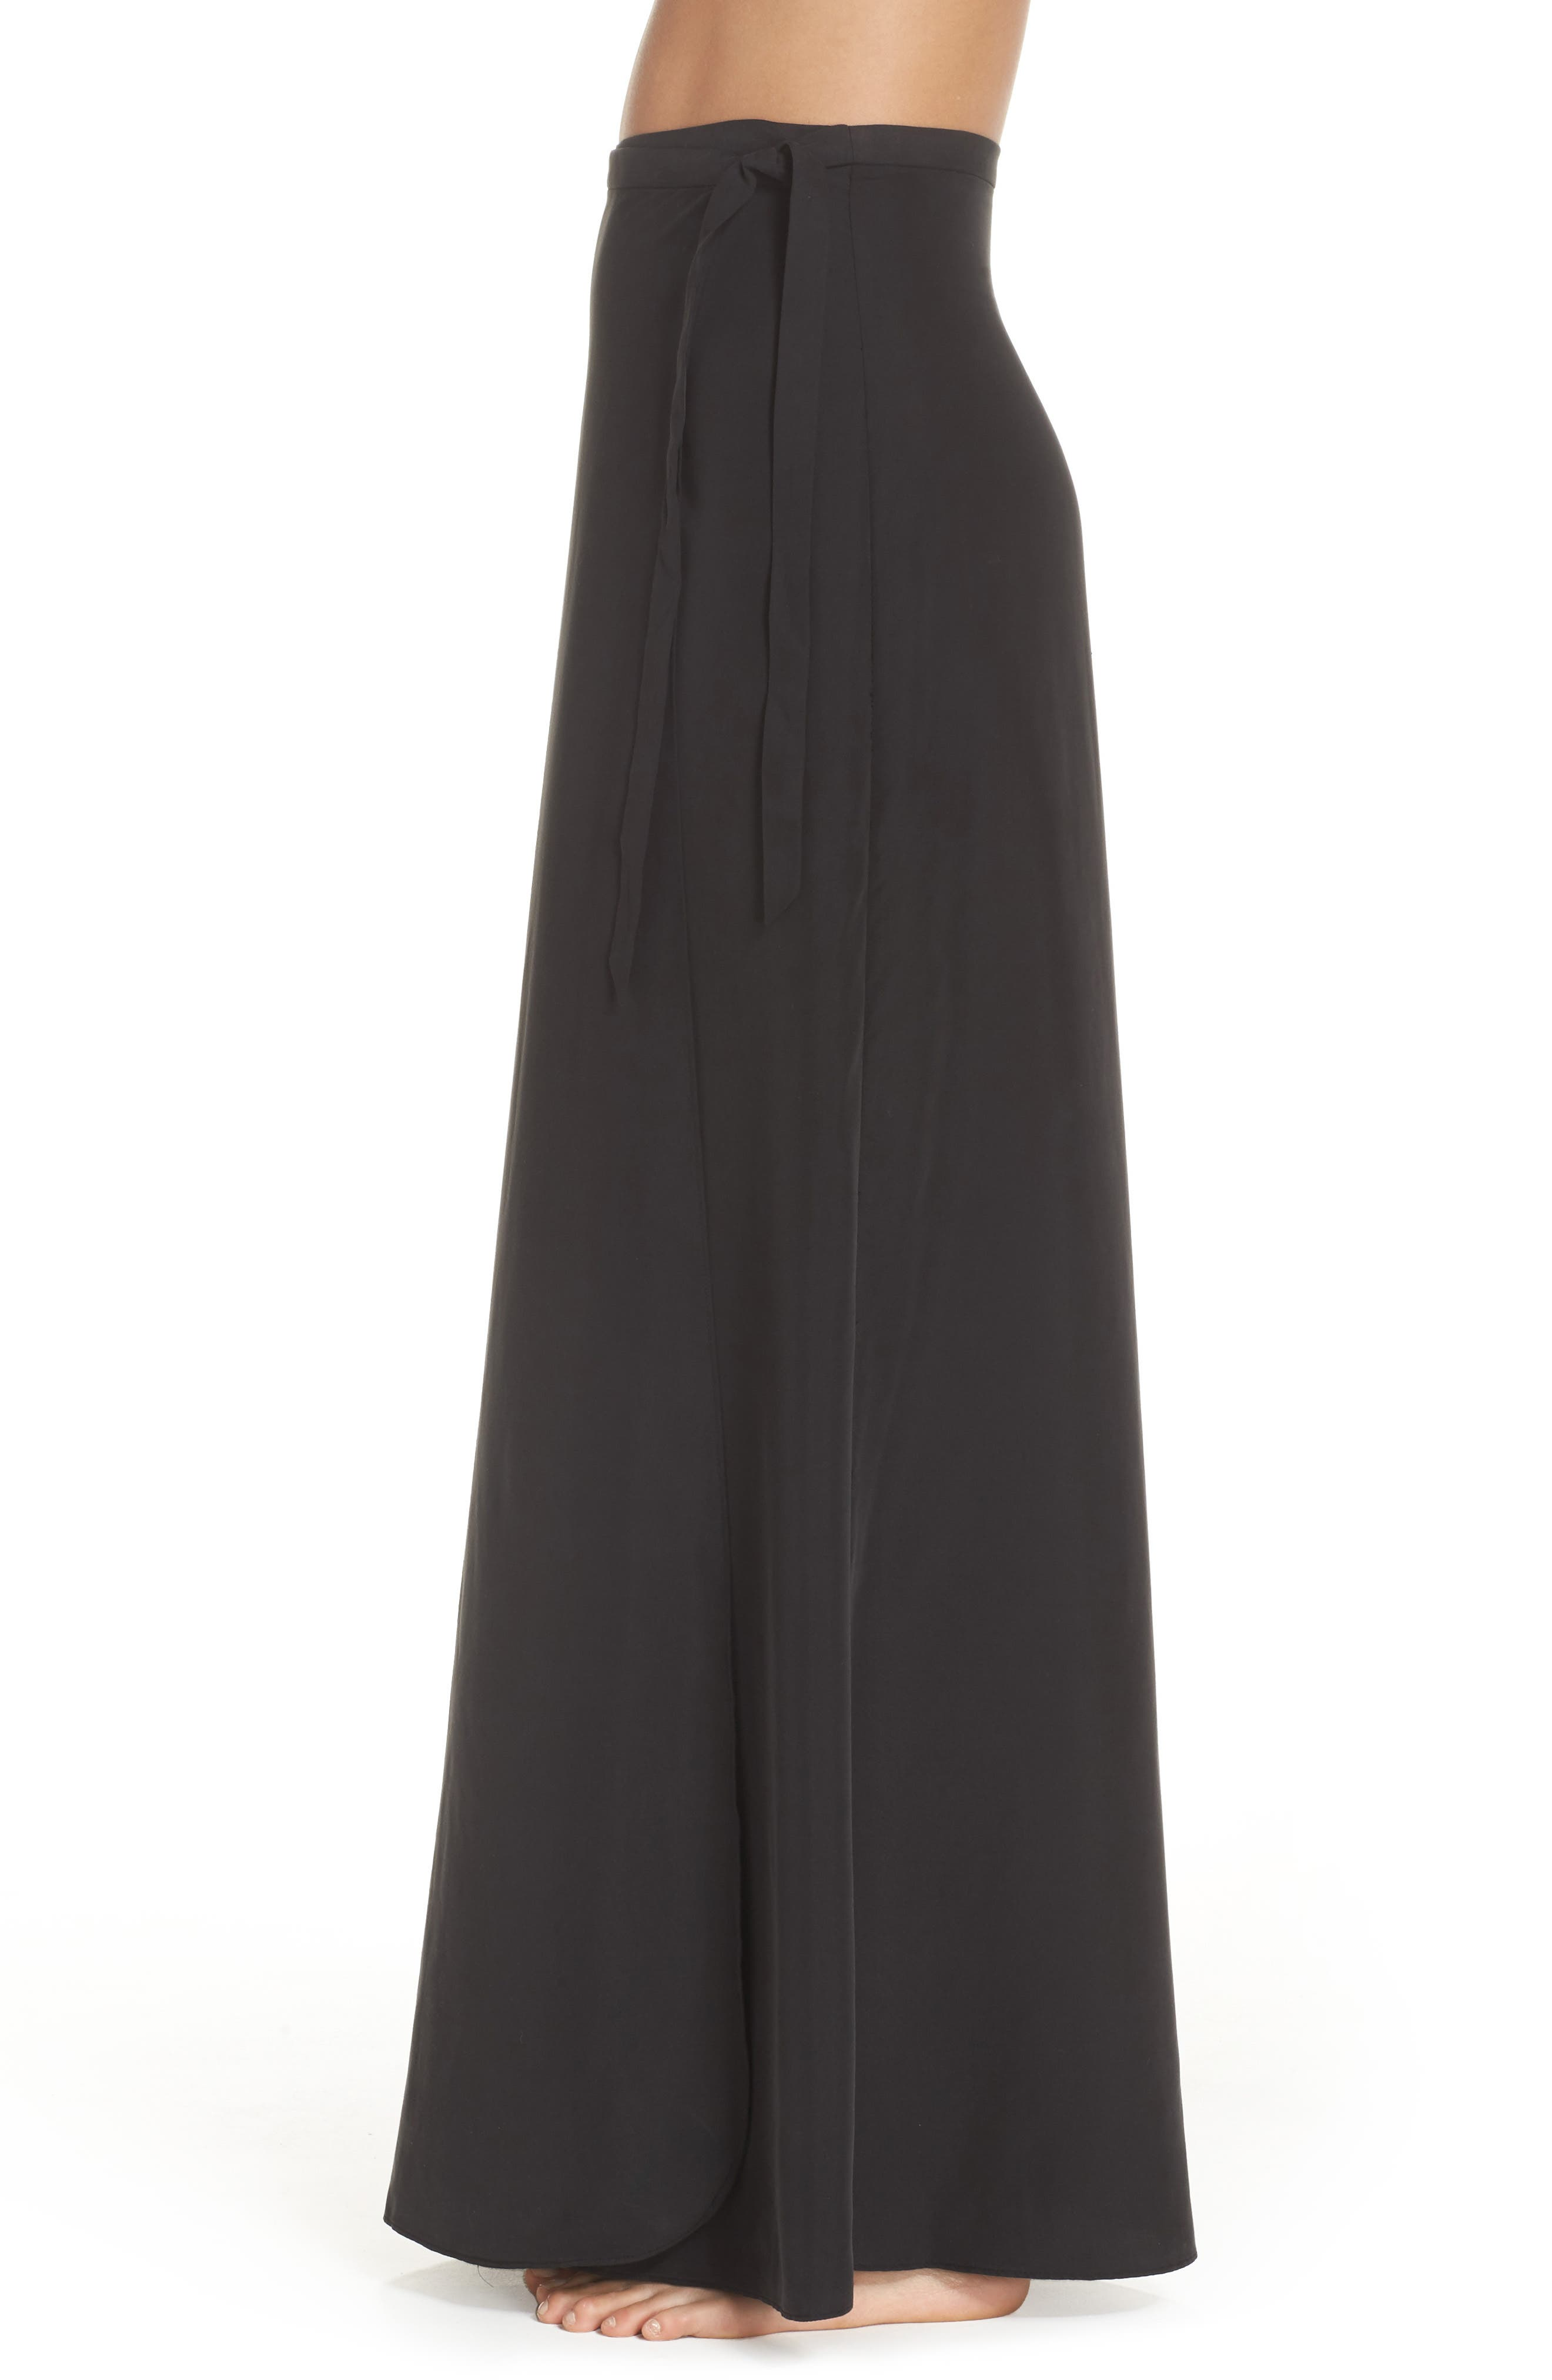 Lasting Impressions Cover-Up Maxi Skirt,                             Alternate thumbnail 3, color,                             001